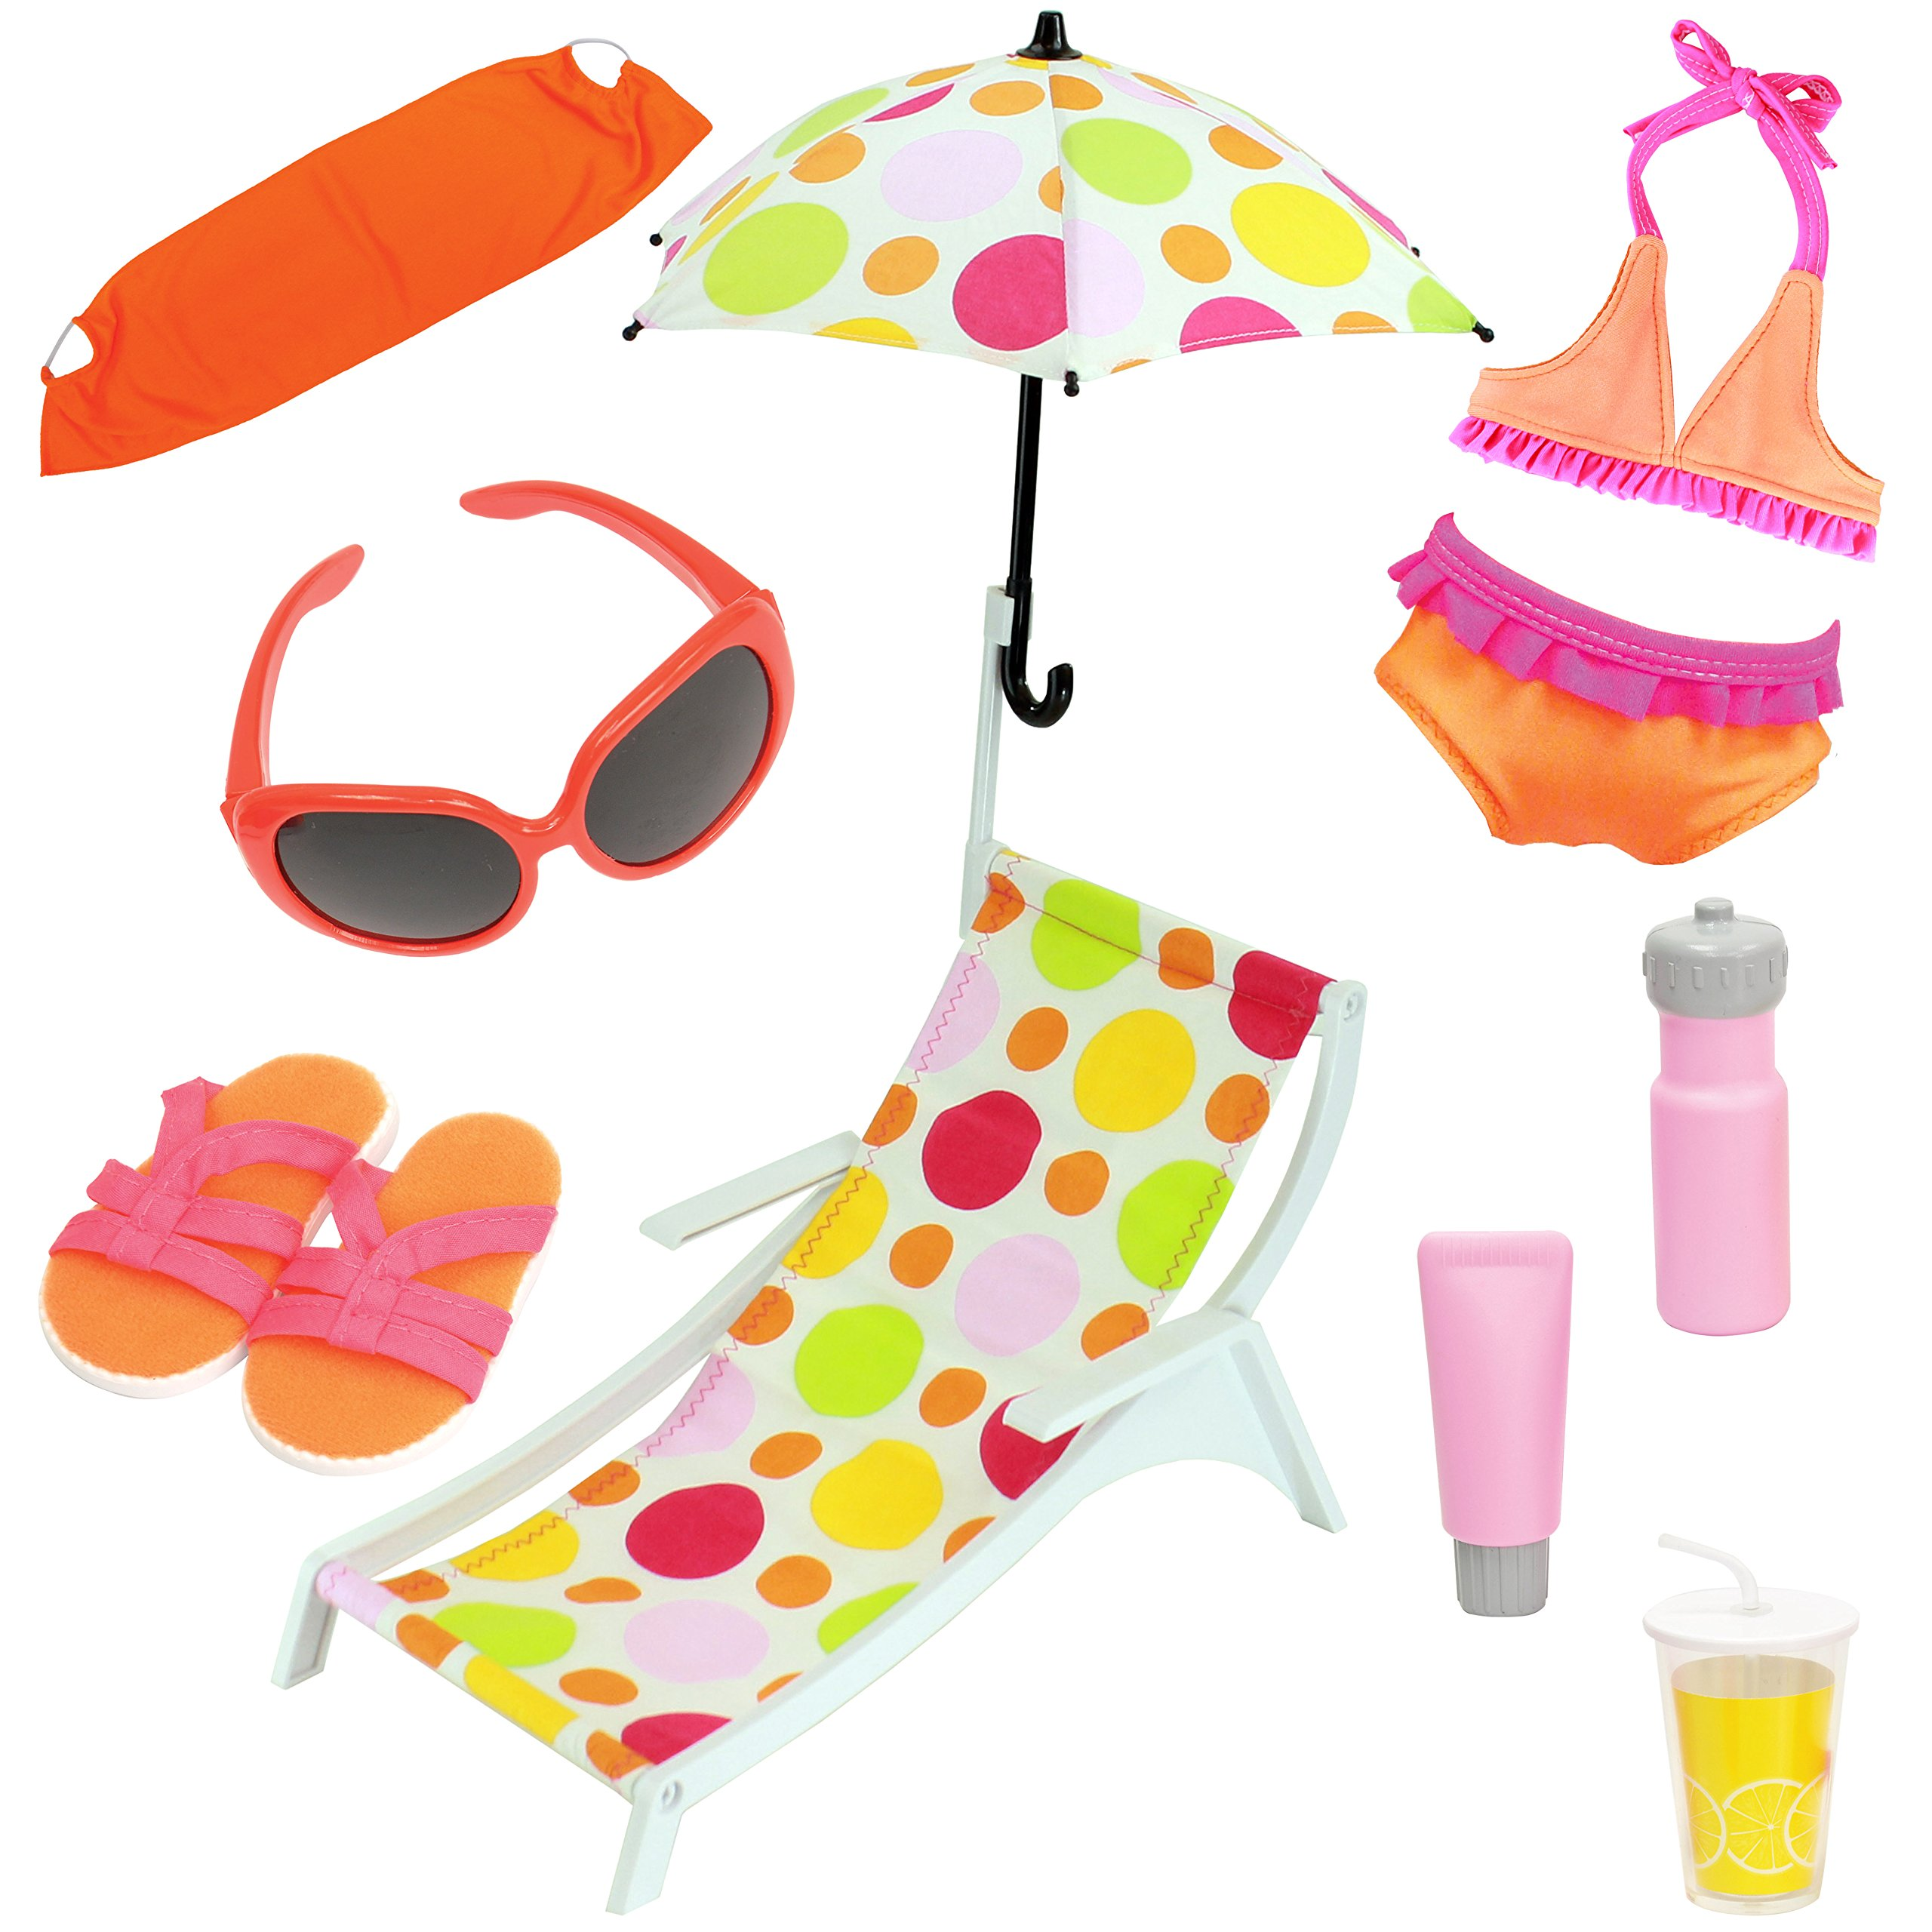 Beverly Hills 10 Piece 18 Inch Doll Beach Set And Accessories. Fits American Girl Dolls - GREAT VALUE PACK!!!Doll Not Included